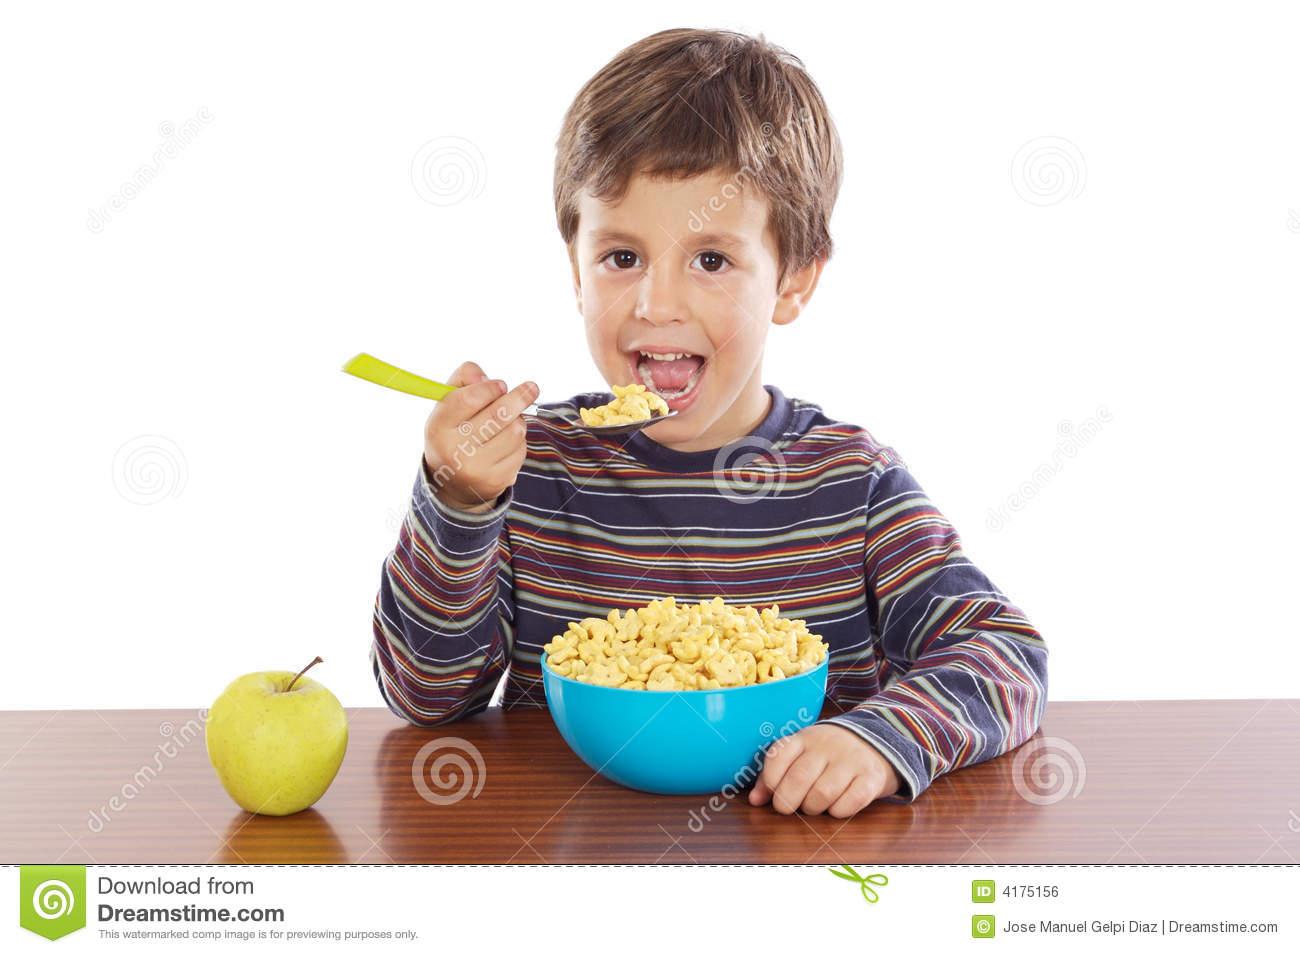 Child Eating Breakfast Royalty Free Stock Image - Image: 4175156